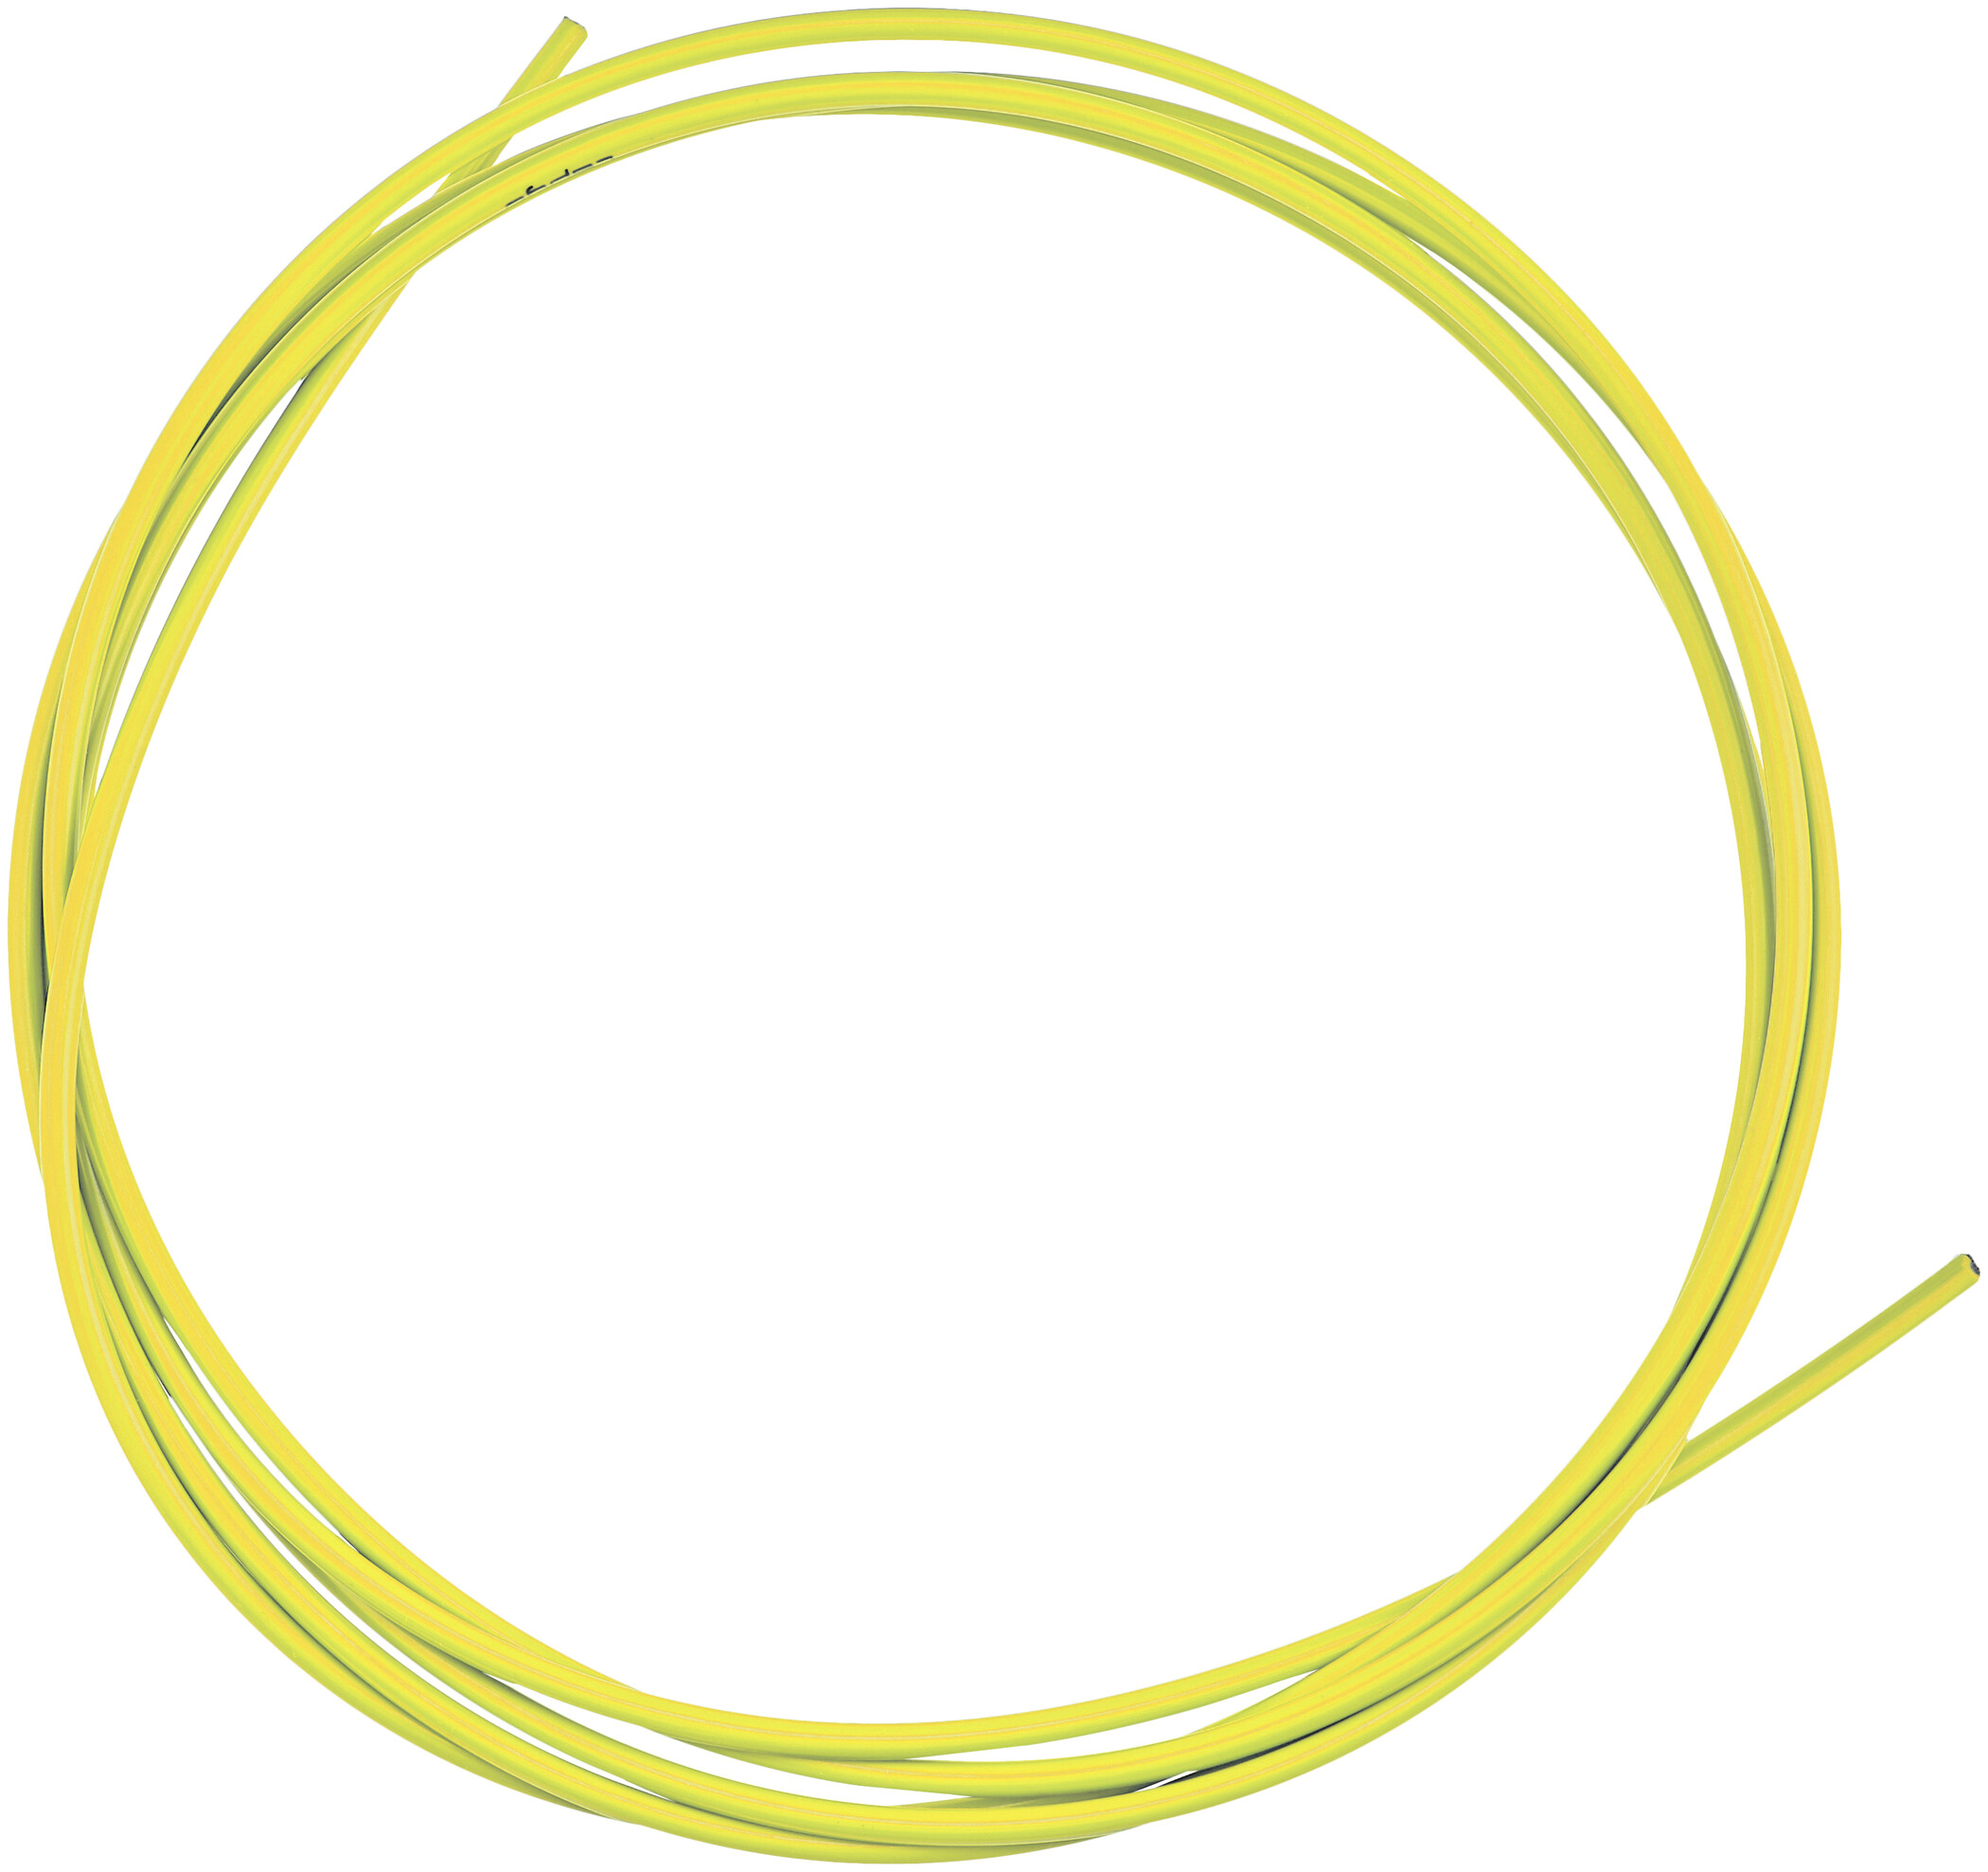 capgo BL Gearyderkabel 3m x 4mm, neon yellow | Gear cables